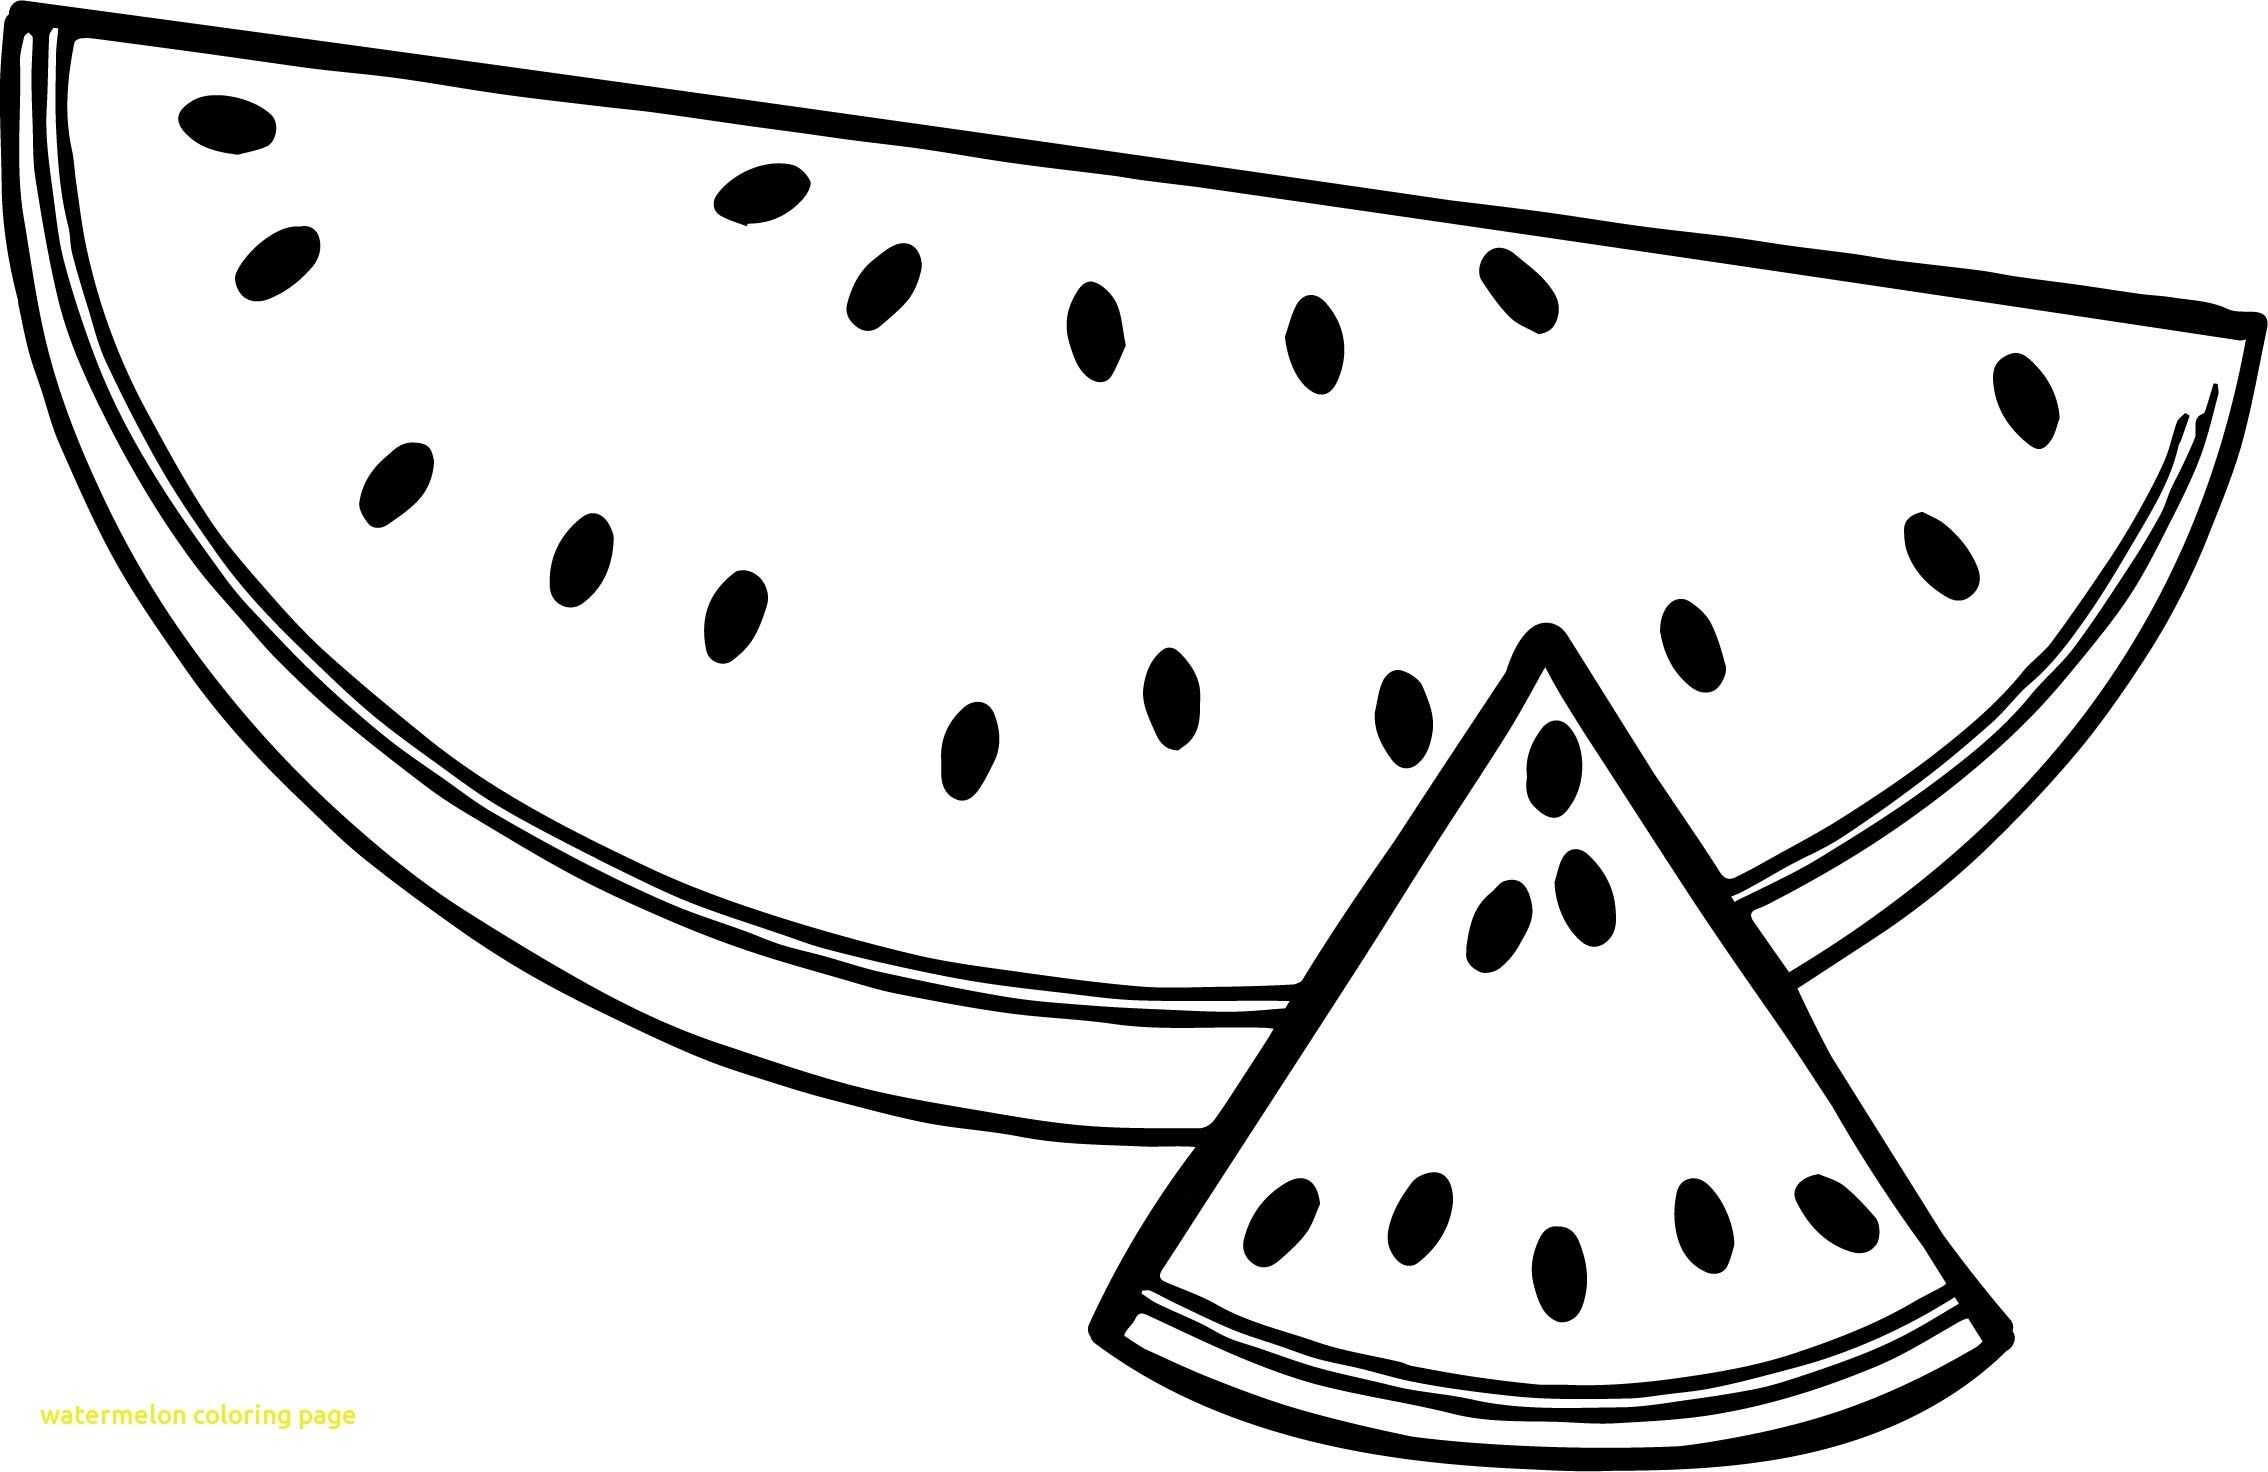 Watermelon Coloring Pages Fruit Coloring Pages Coloring Pages